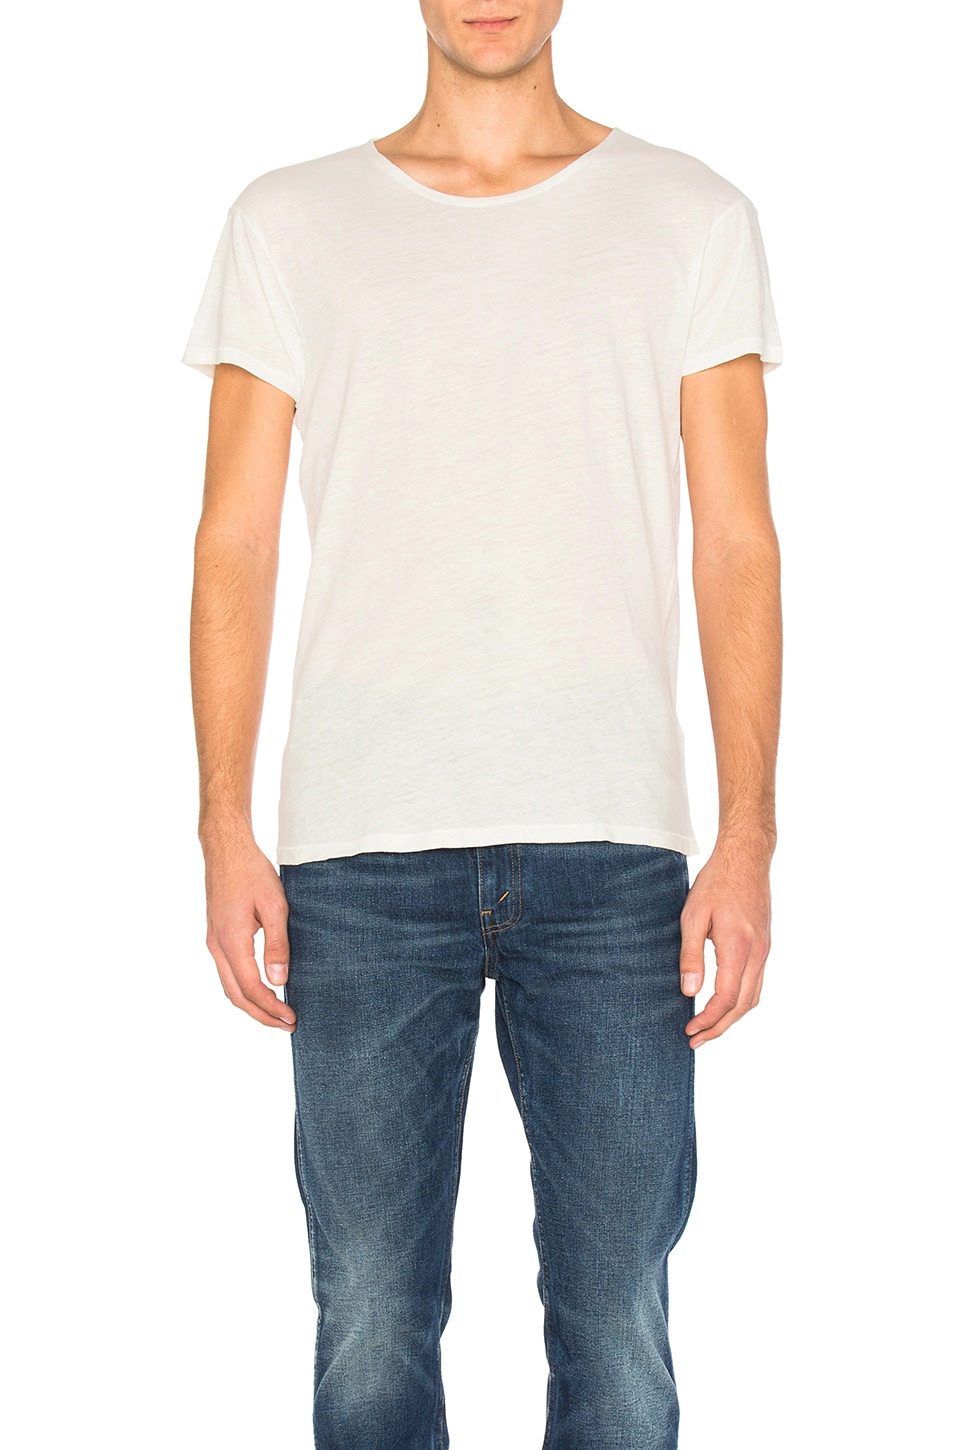 1930's Bay Meadows Tee by LEVI'S Vintage Clothing